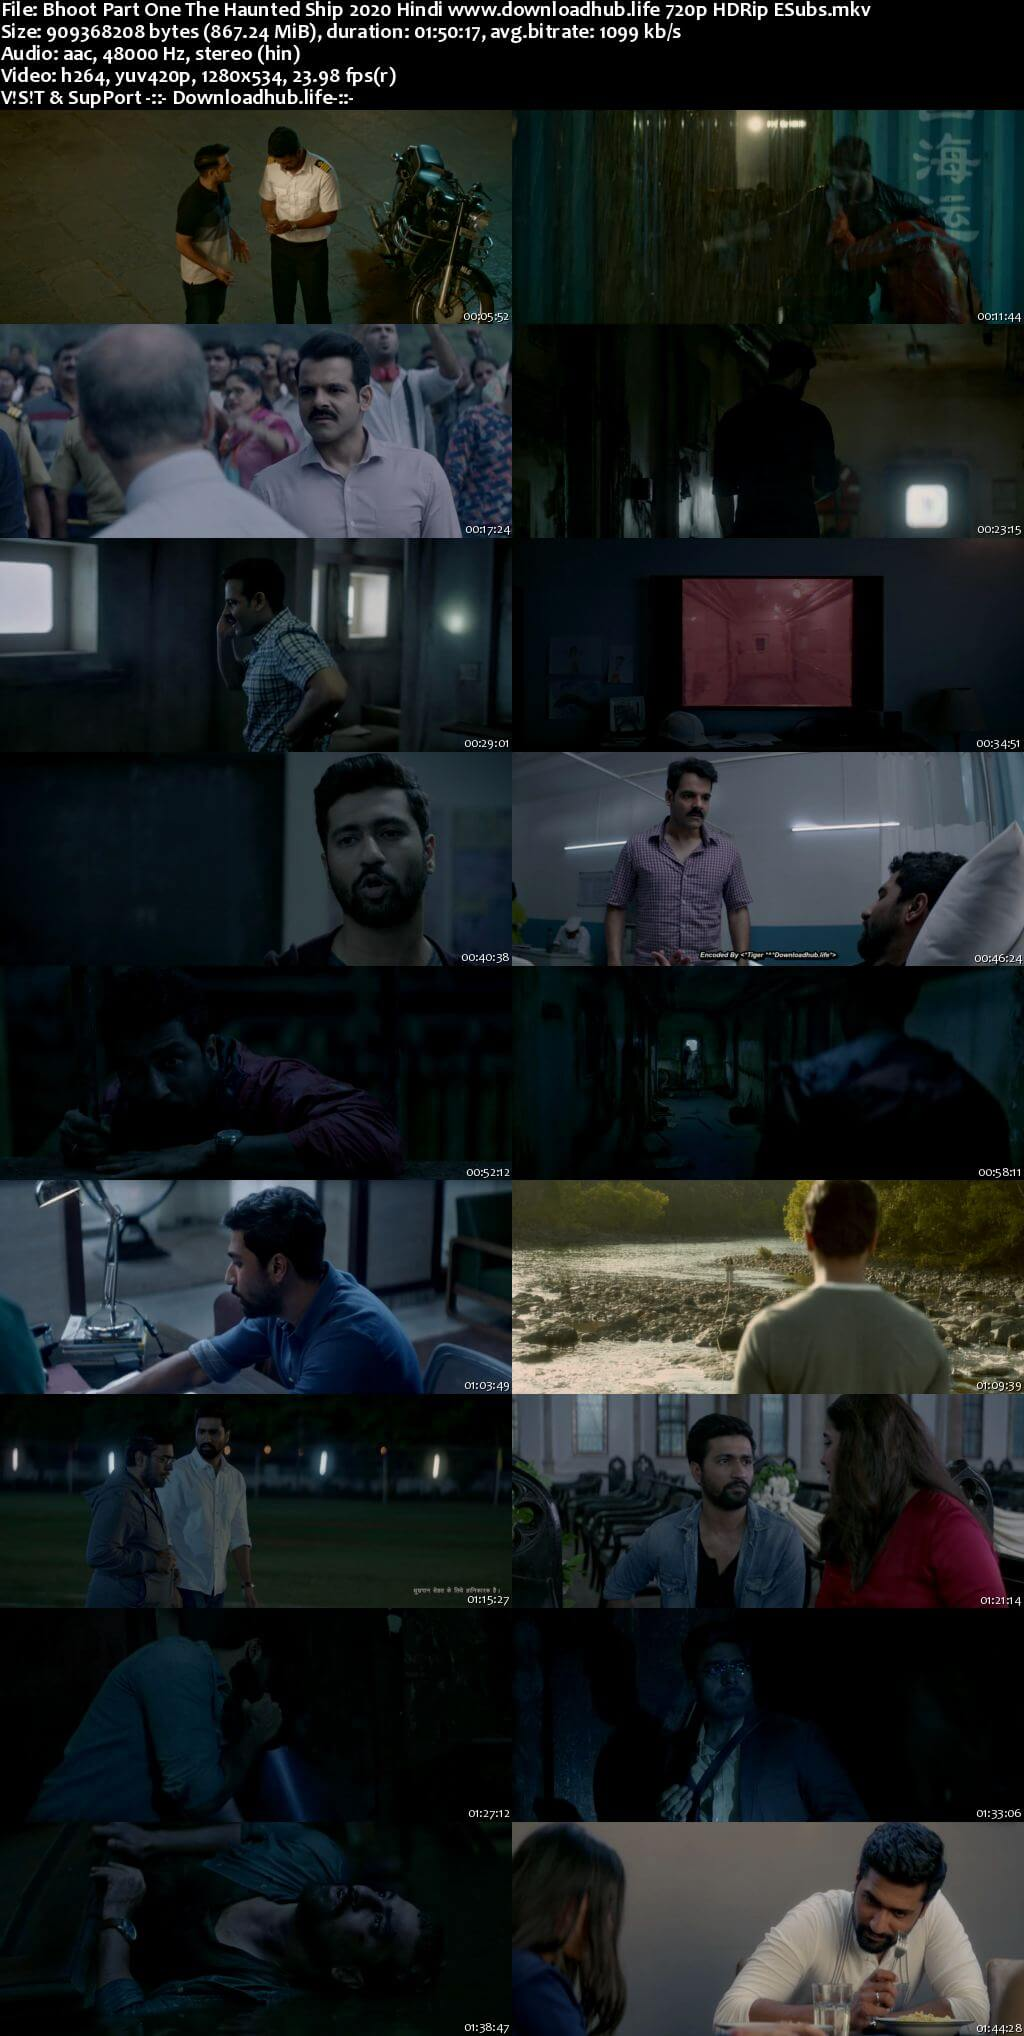 Bhoot Part One The Haunted Ship 2020 Hindi 720p HDRip ESubs